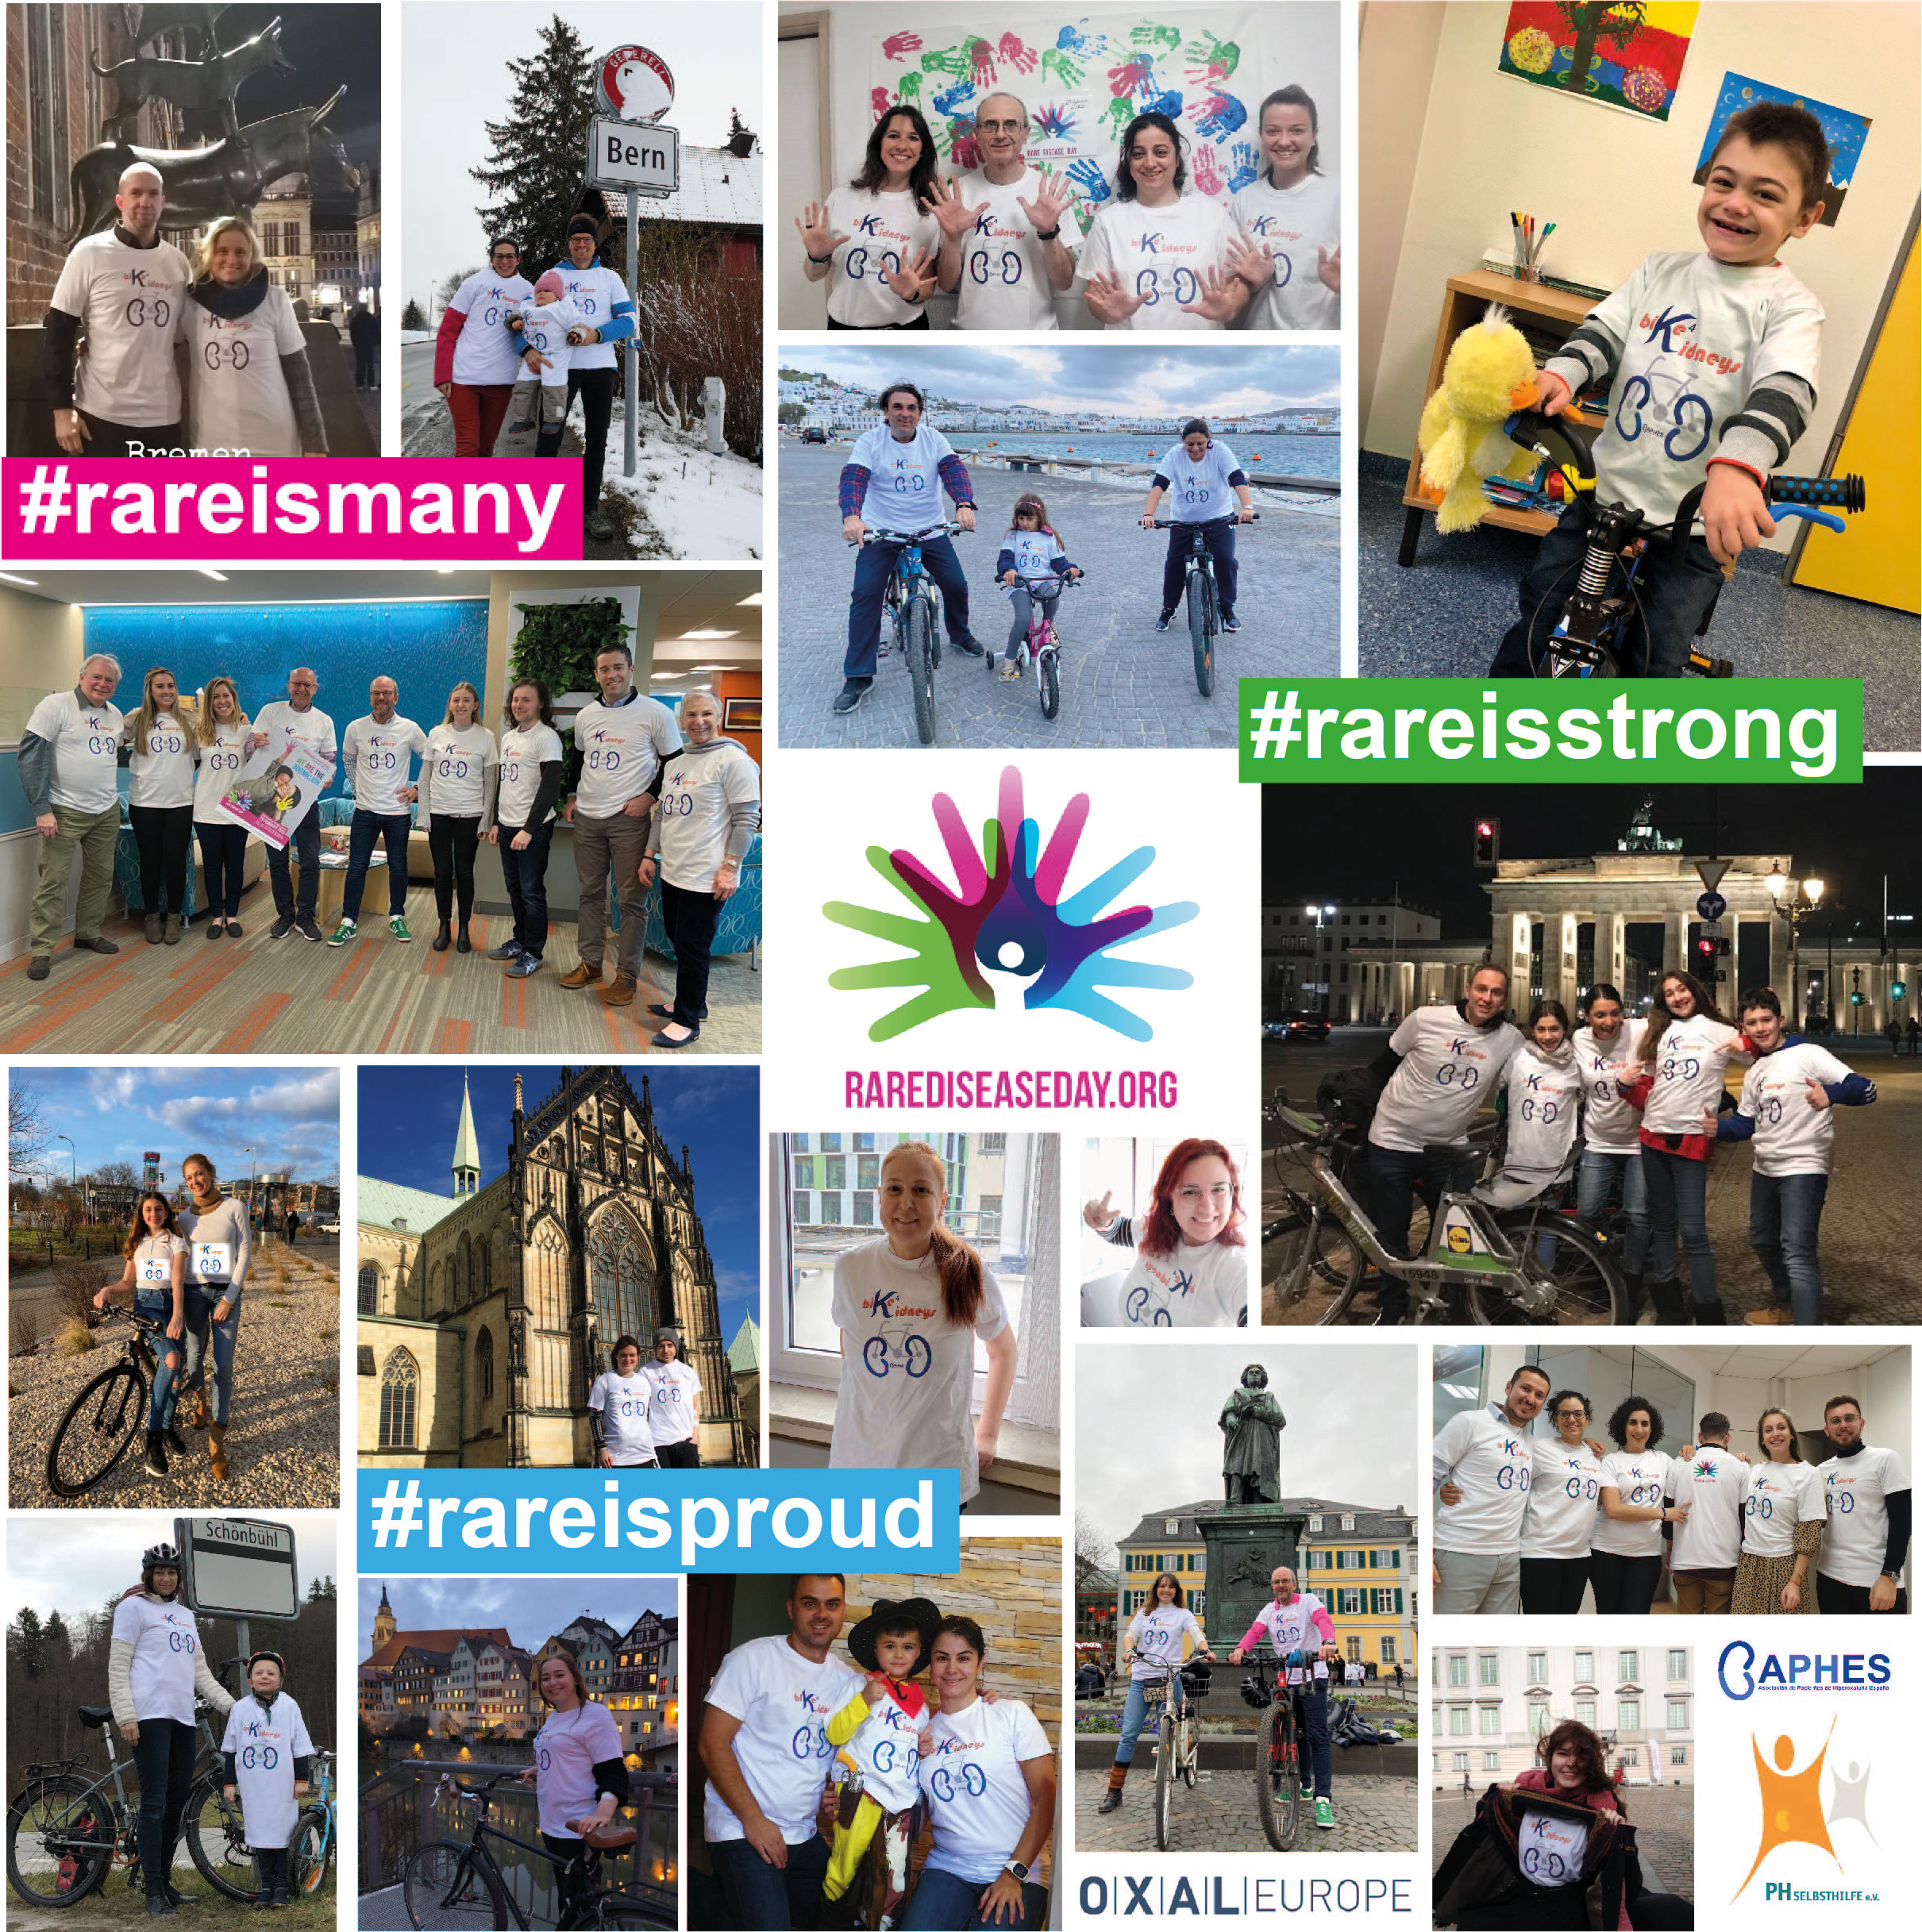 OxalEurope for the Rare Disease Day